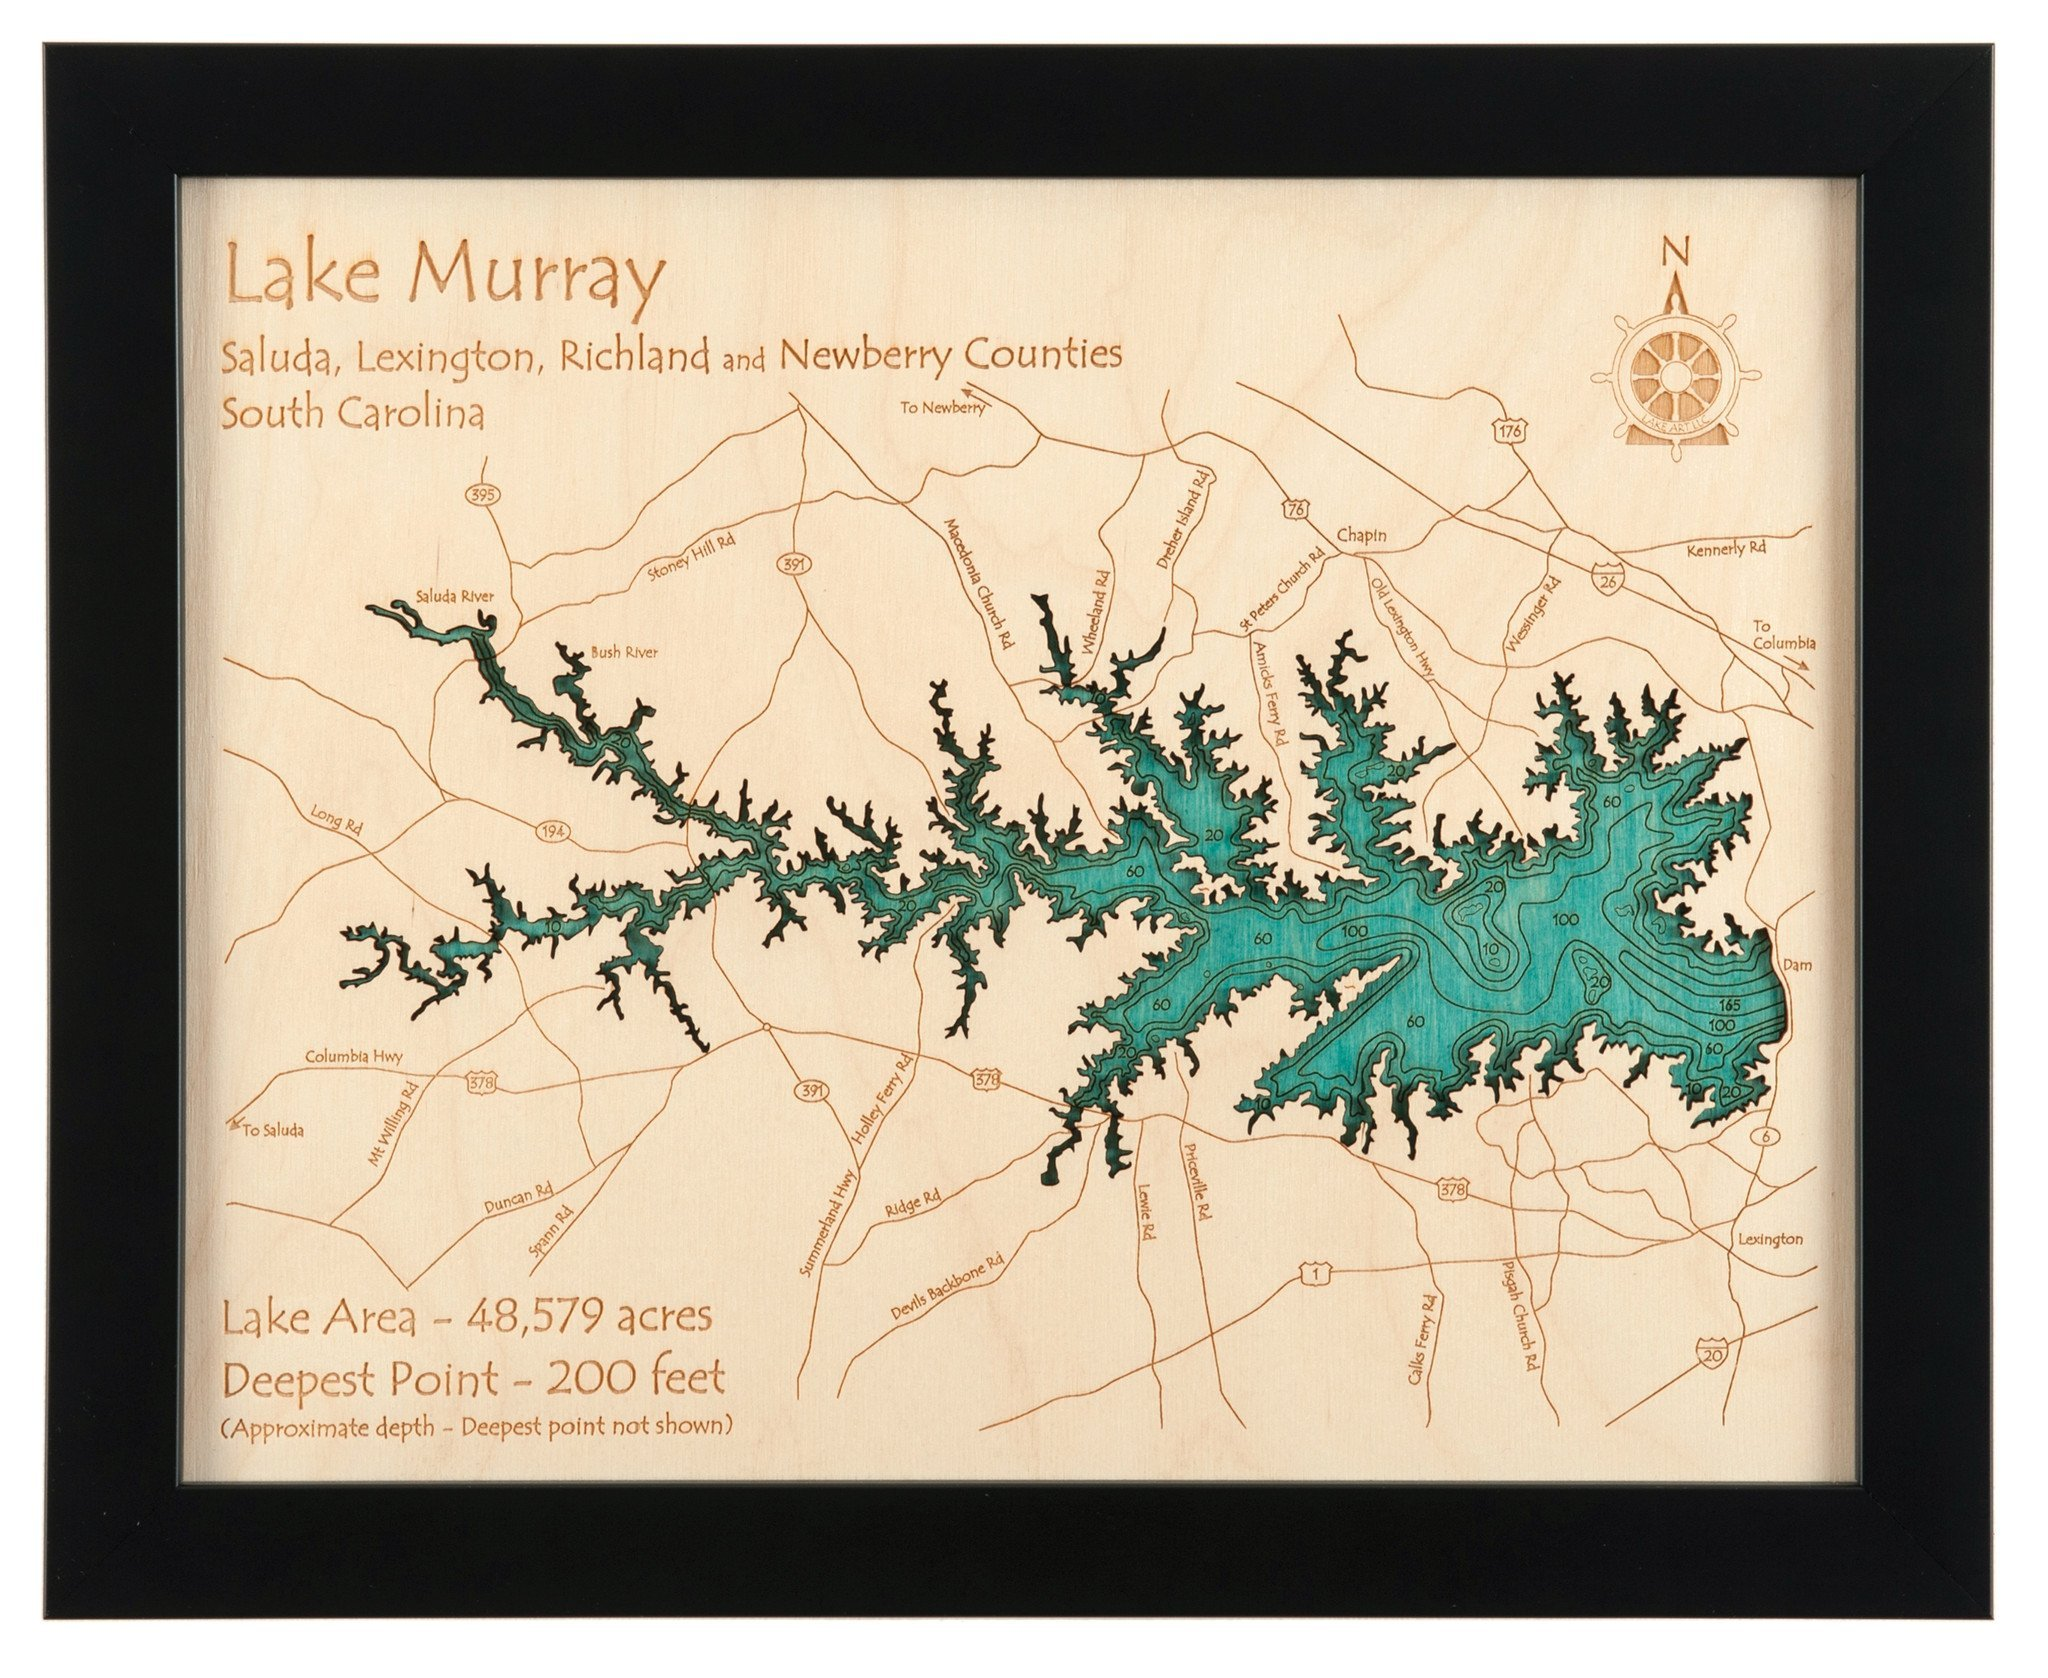 Echo Lake in El Dorado, CA - 2D Map (Black Frame/No Glass Front) 11 x 14 IN - Laser carved wood nautical chart and topographic depth map. by Long Lake Lifestyle